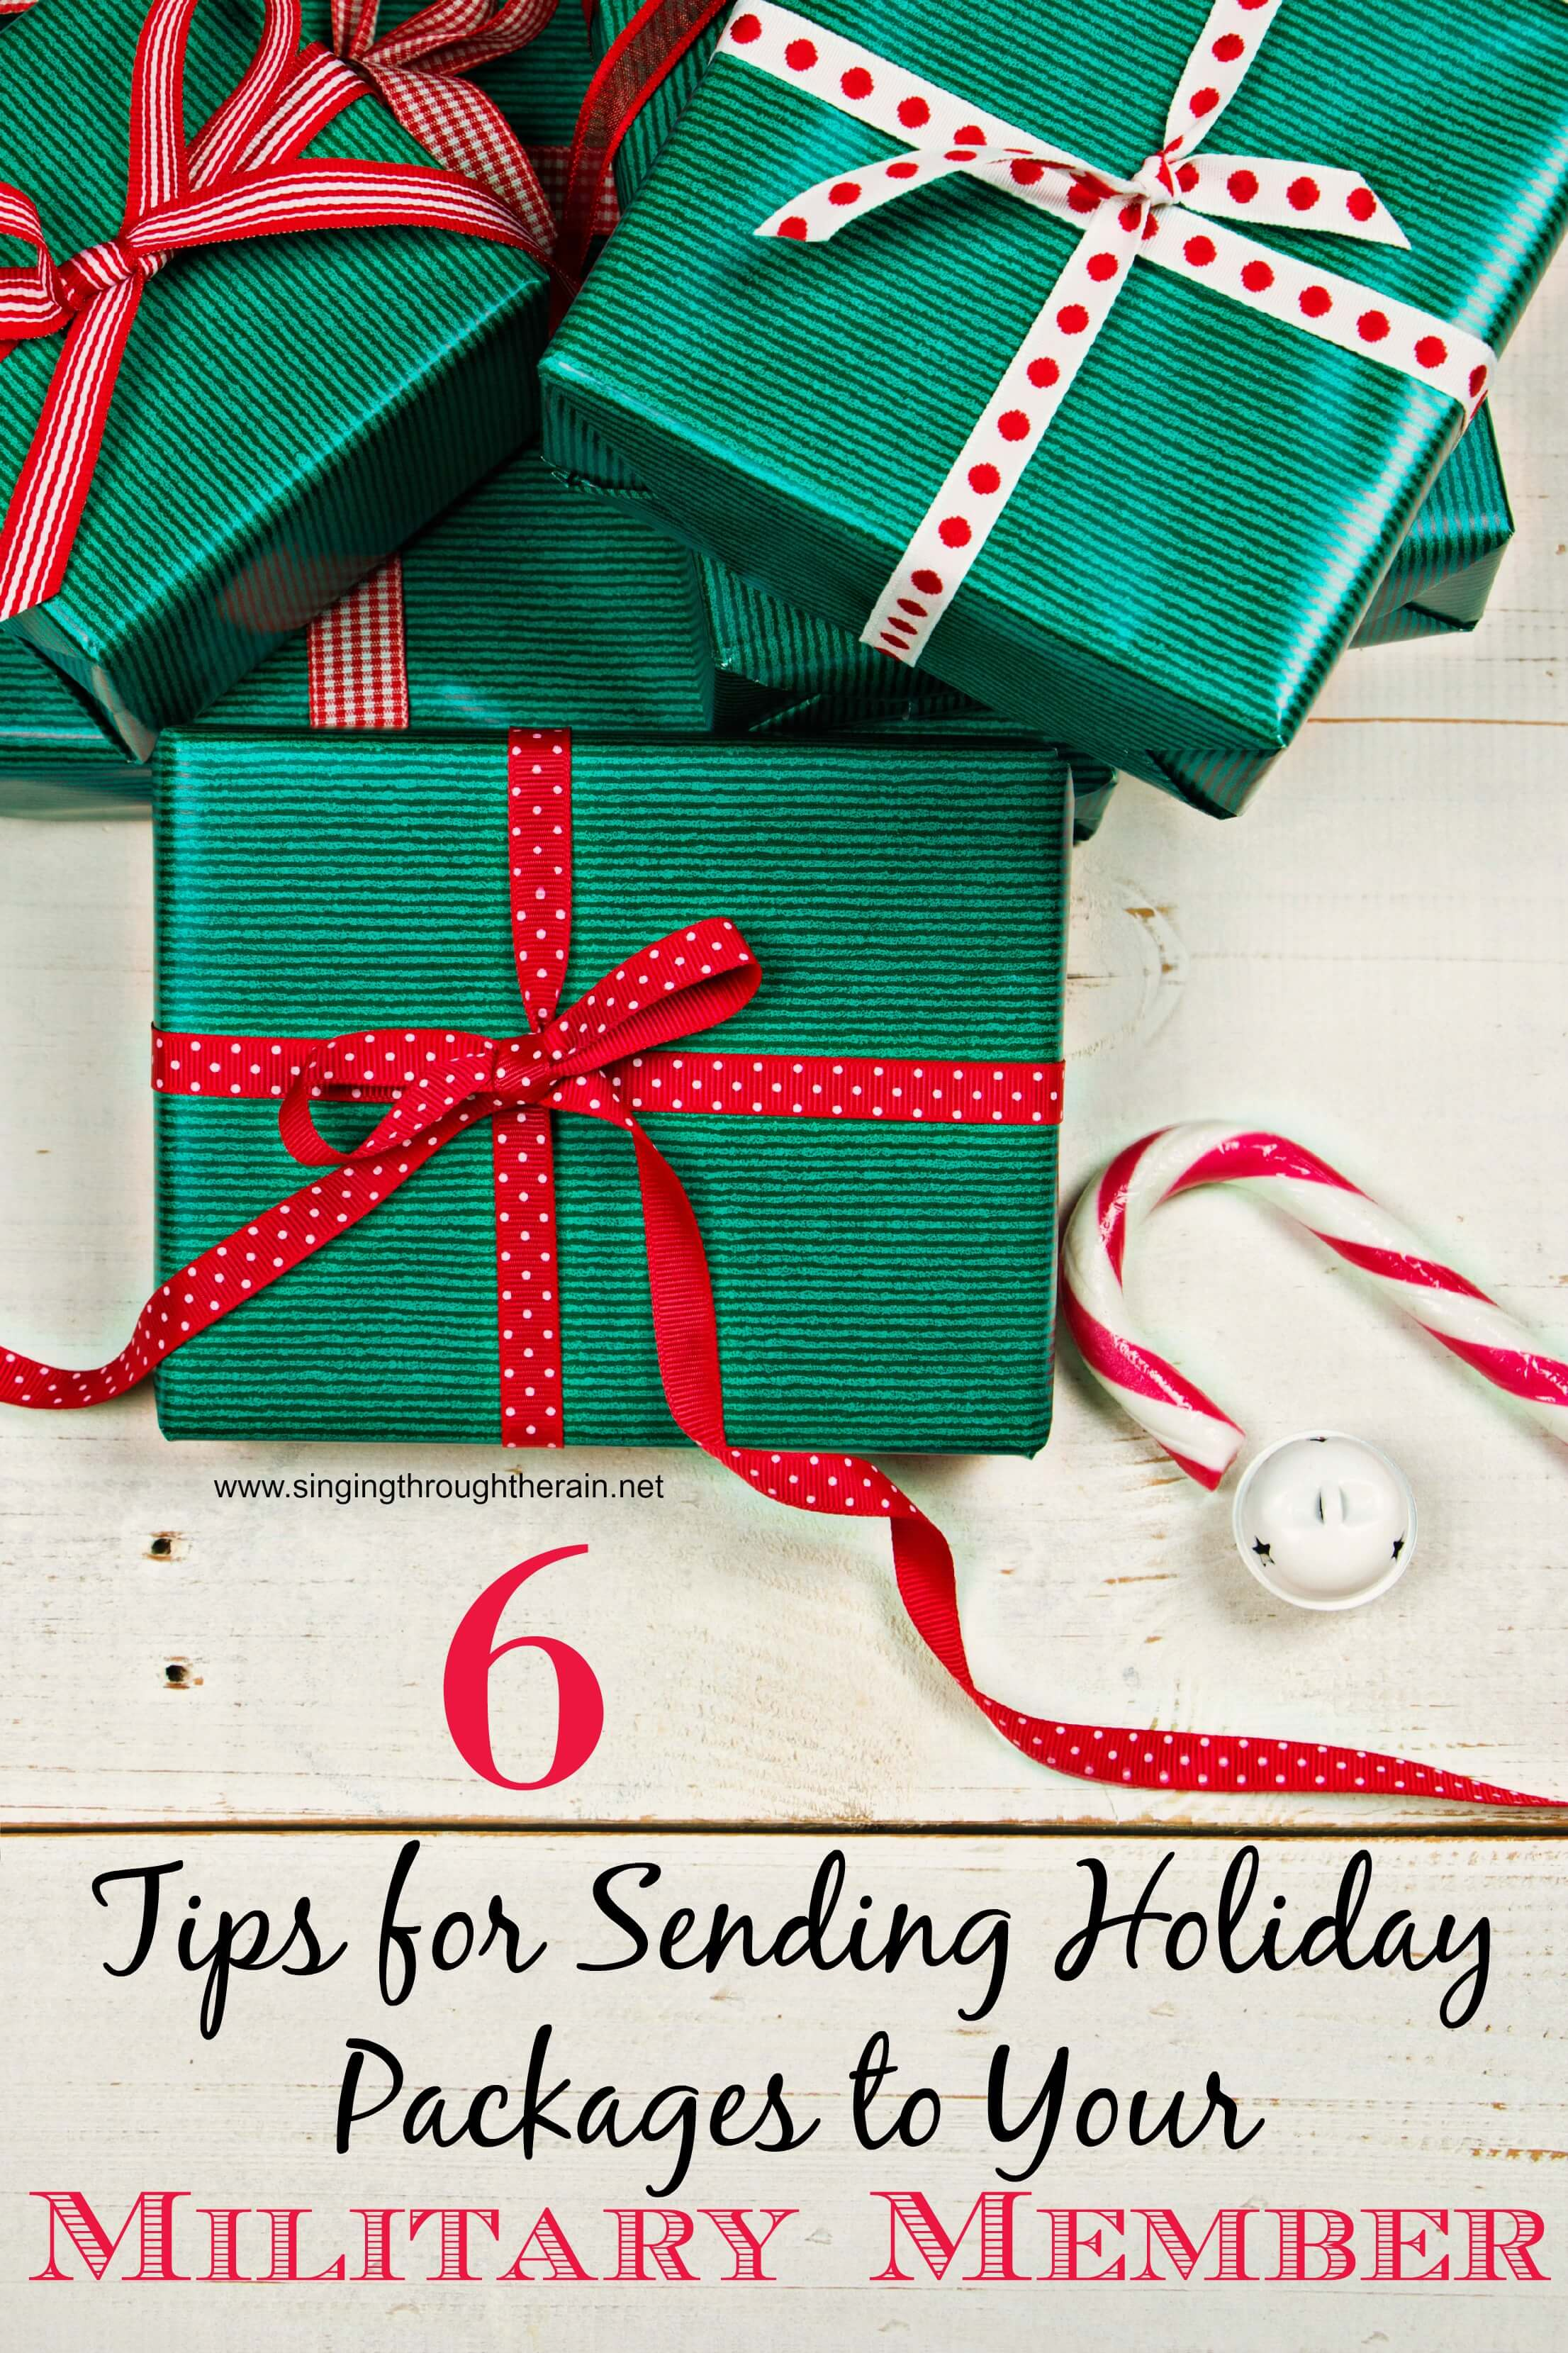 6 Tips for Sending Holiday Packages to Your Military Member